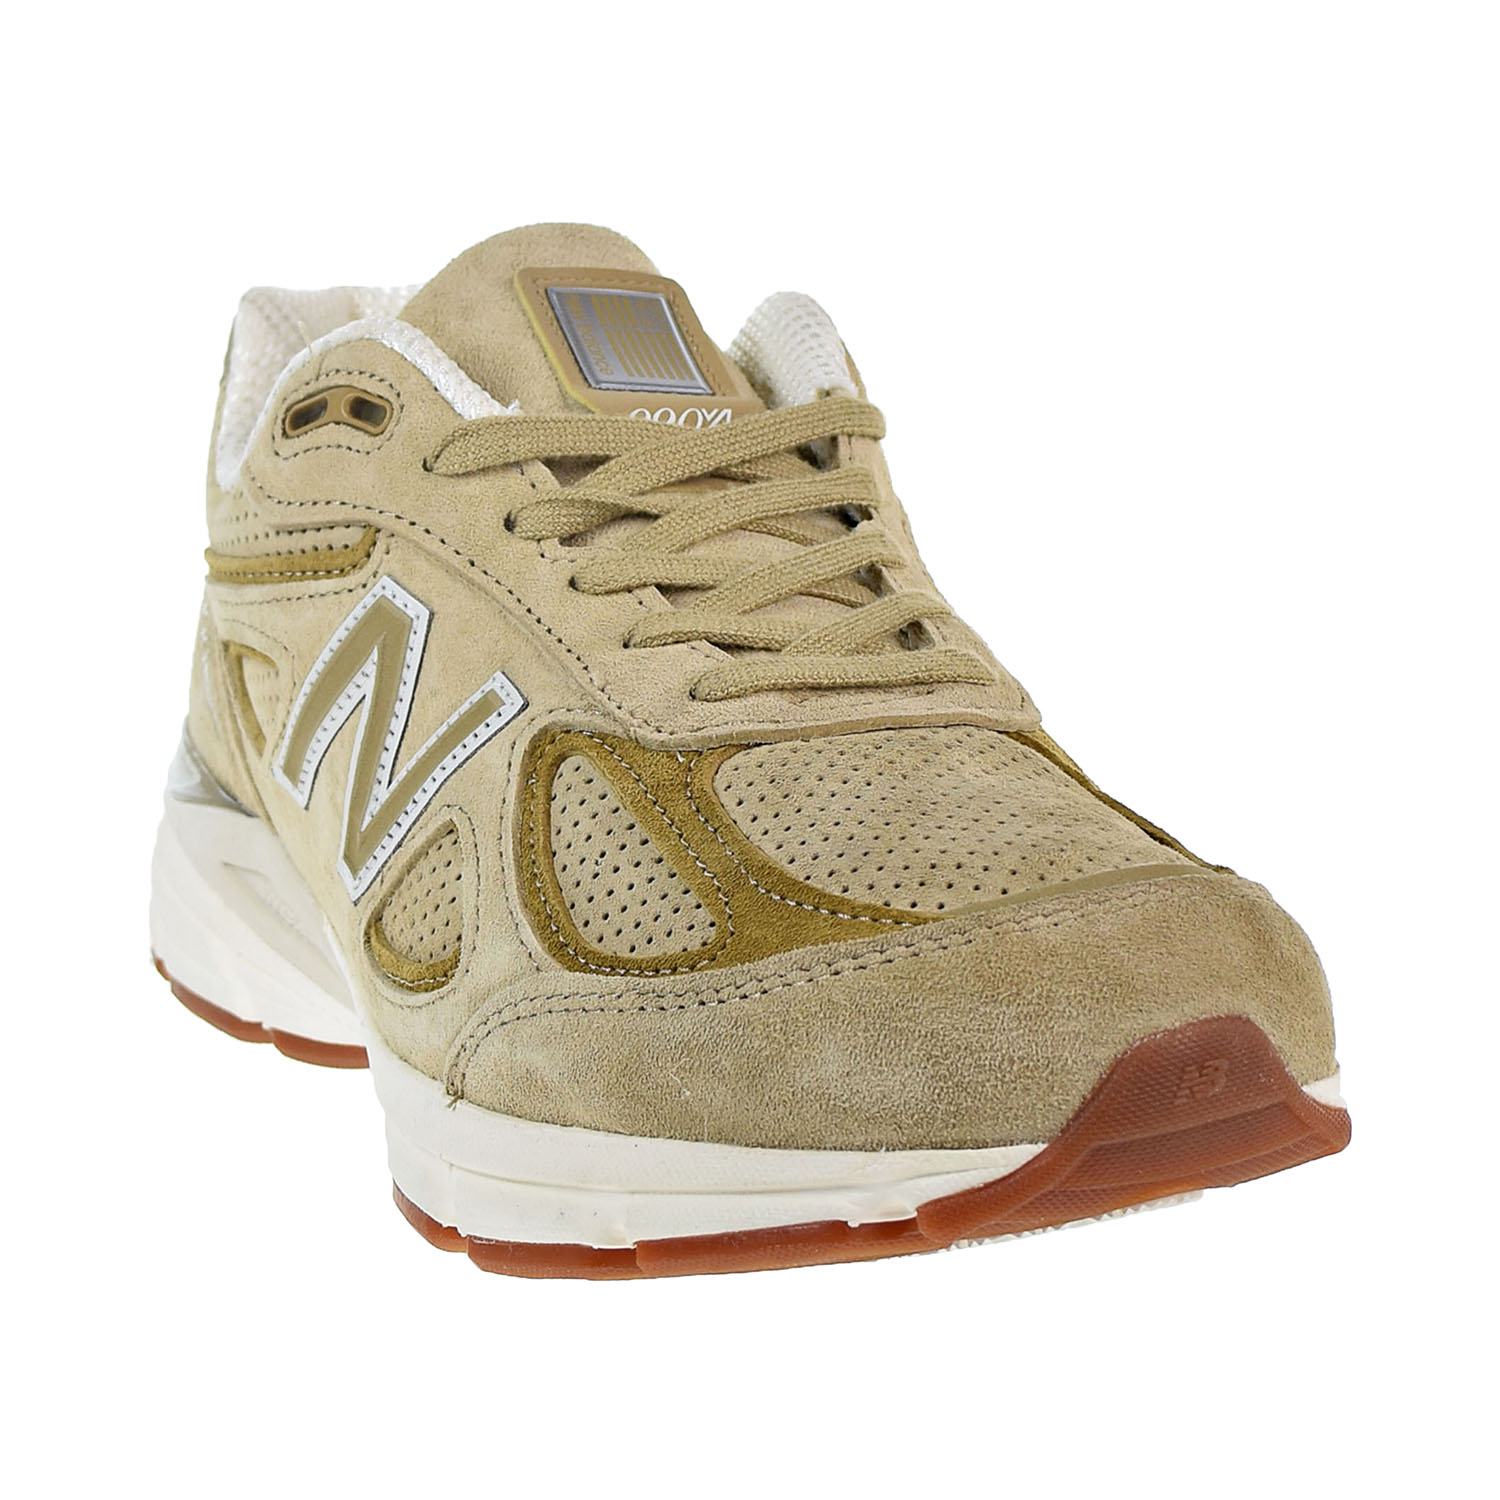 sports shoes 079b6 f5fb1 Details about New Balance 990 Men's Shoes Hemp/Linseed M990-HL4